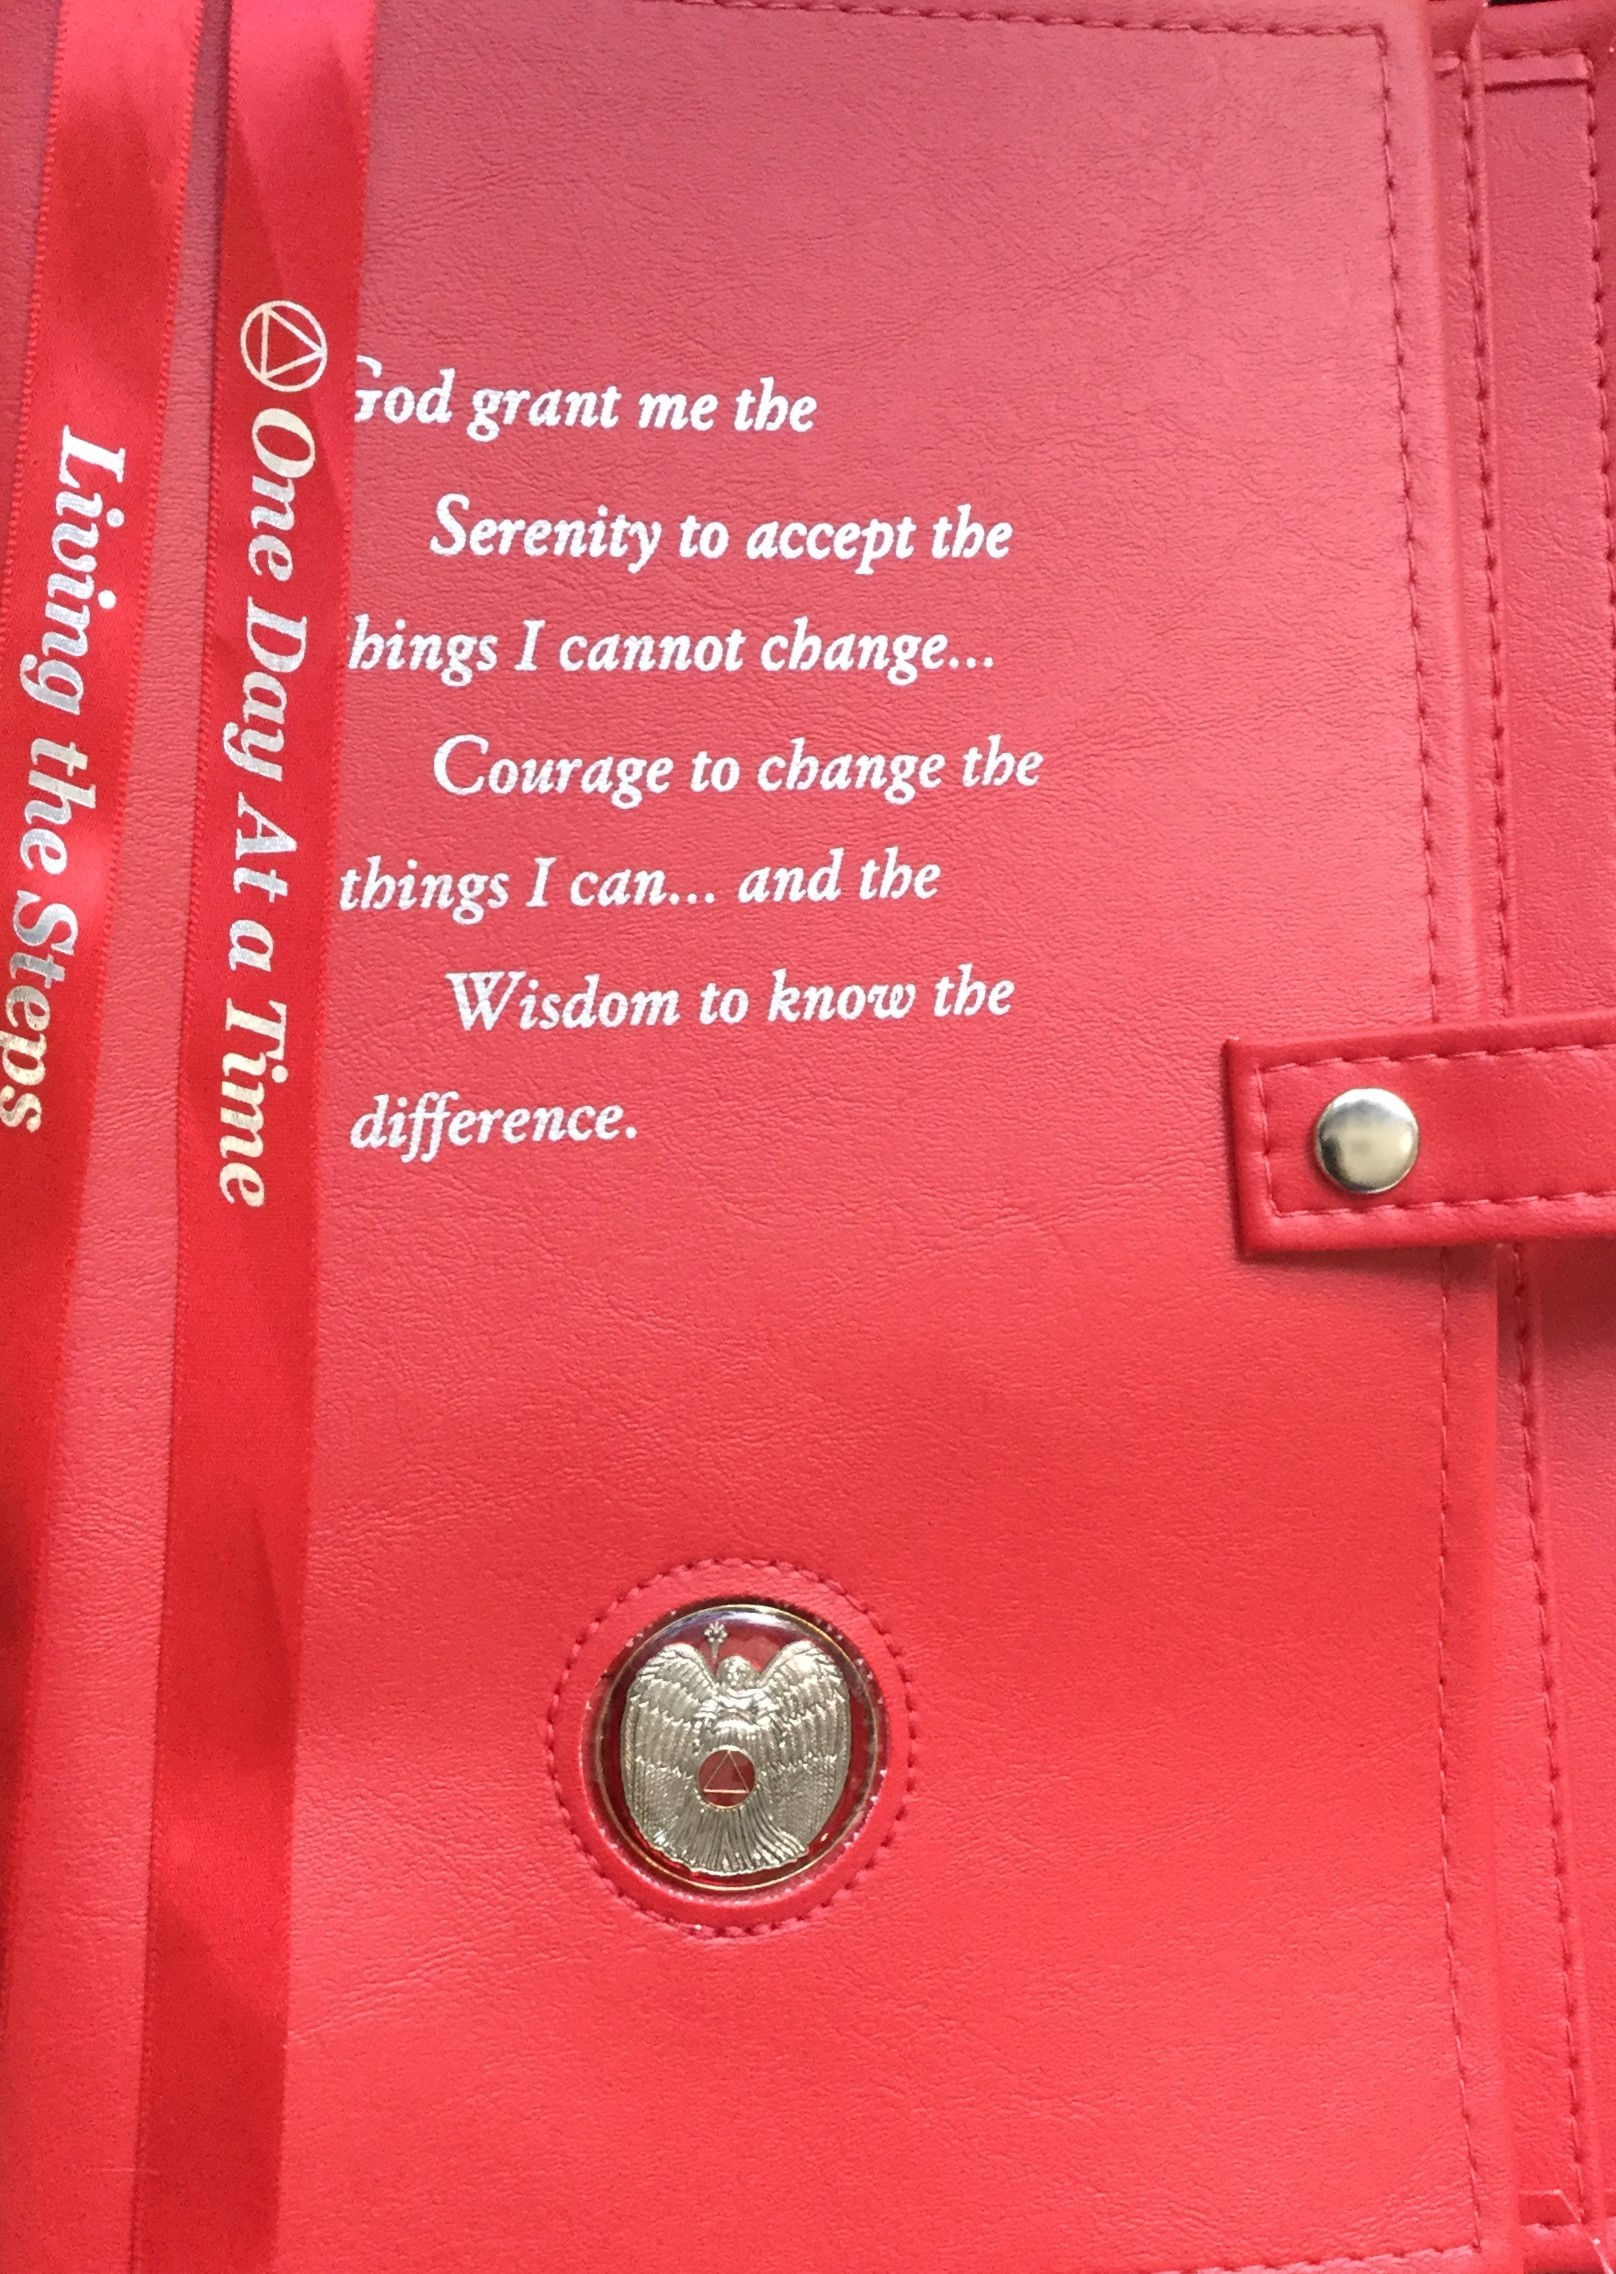 Large Print Aa Serenity Prayer Double Cover Red